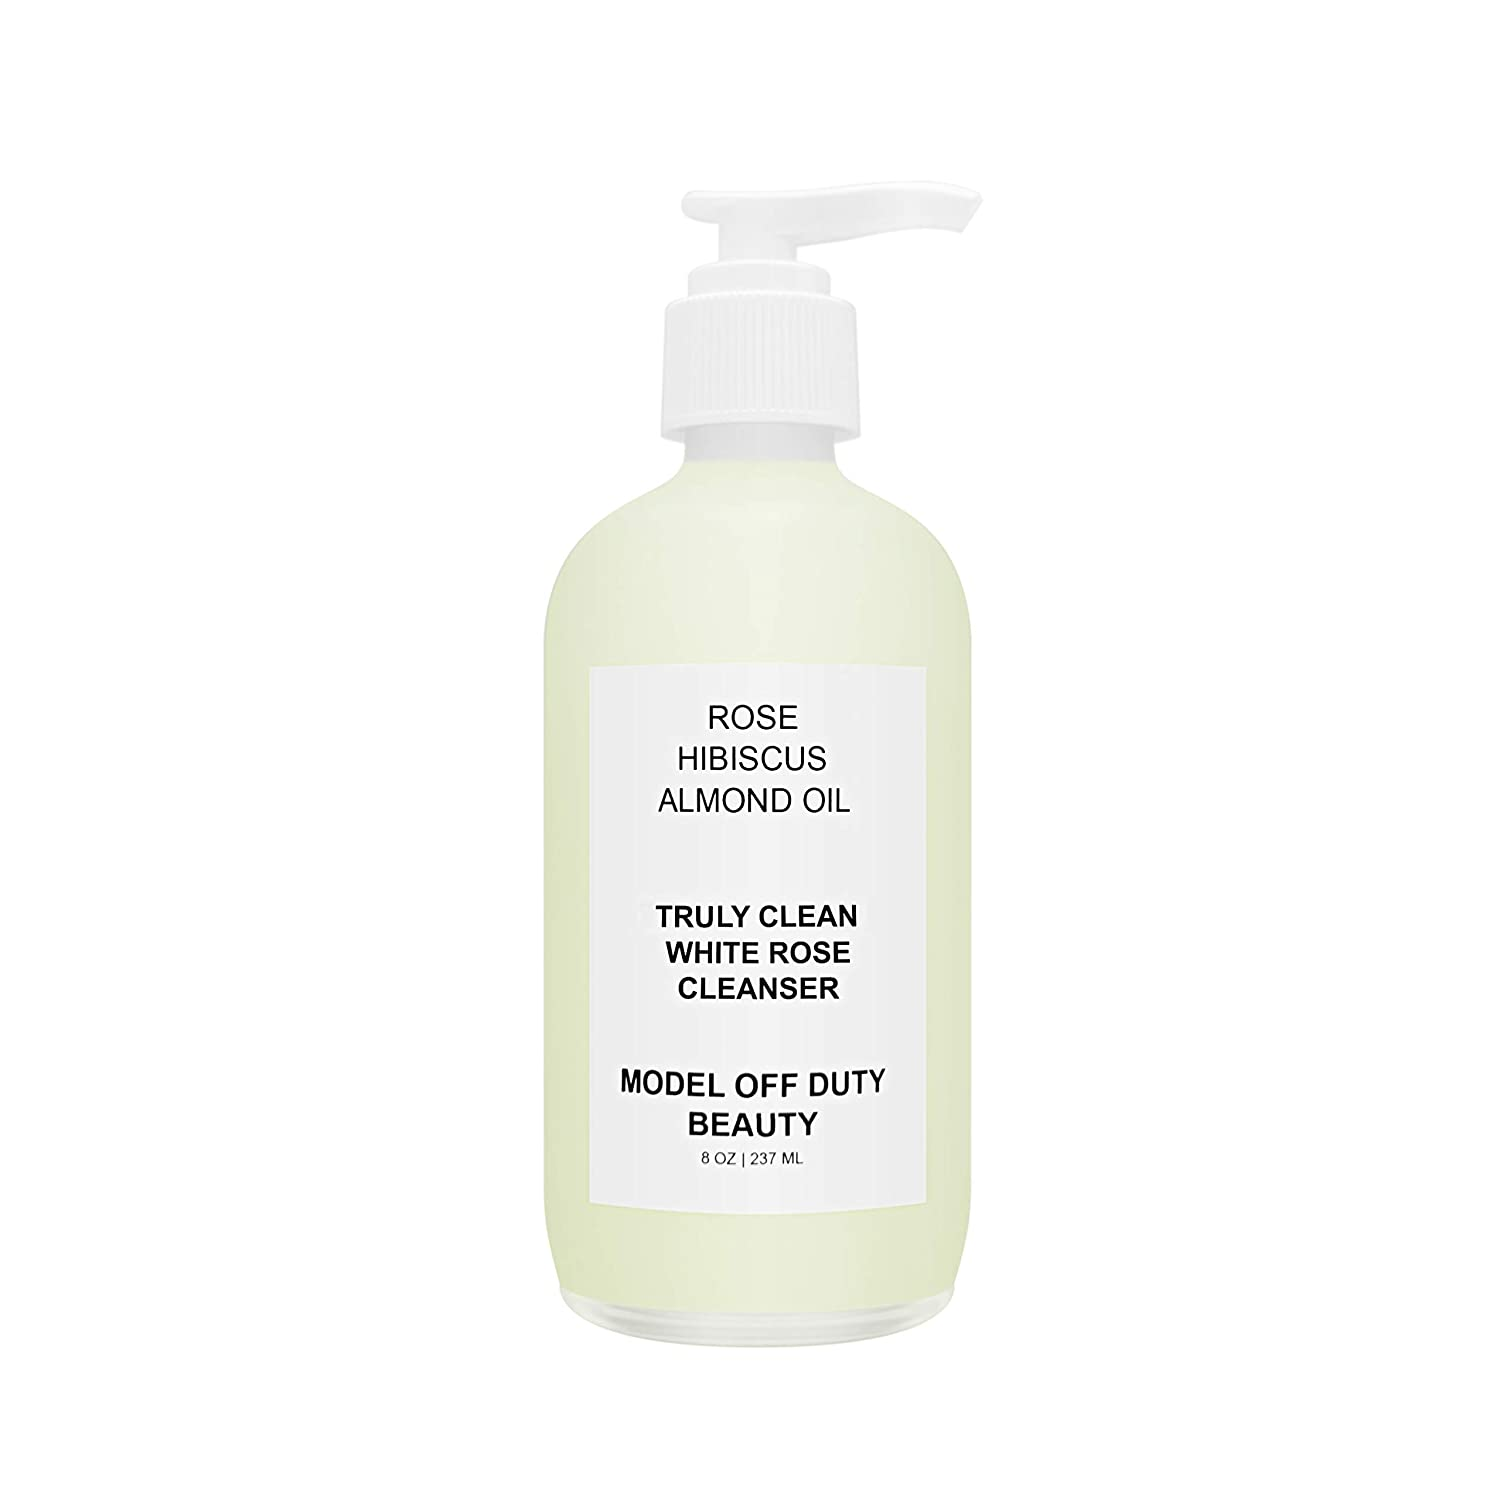 Model off Duty Beauty Truly Clean White Rose Facial Cleanser | HUGE 8 oz Natural, Vegan & Organic Ingredients | Anti-Aging Face Wash, Stops Breakouts, Balances pH, Glowing Skin Great for All Skin Type